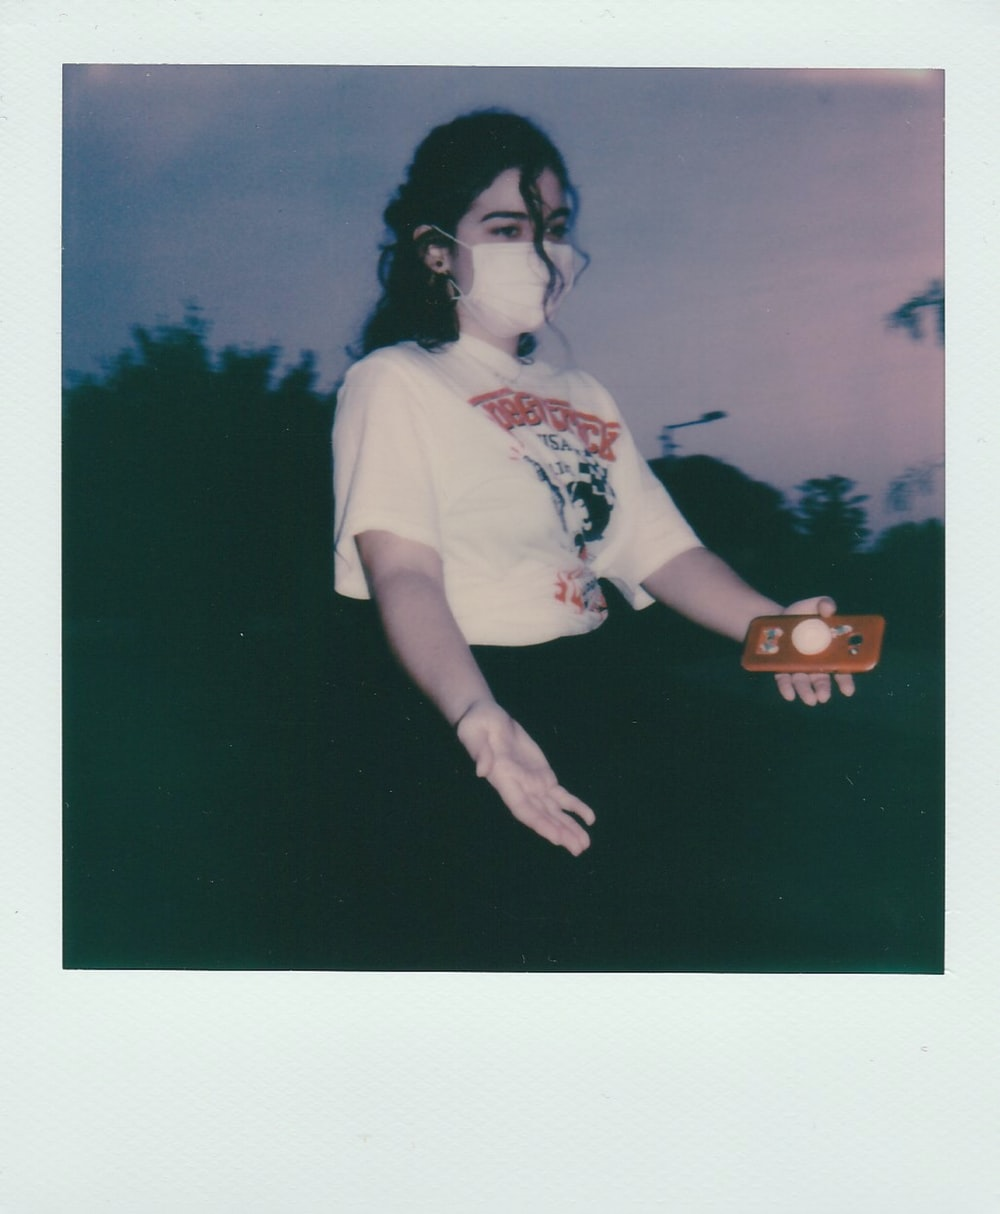 woman in white t-shirt holding brown wooden cup